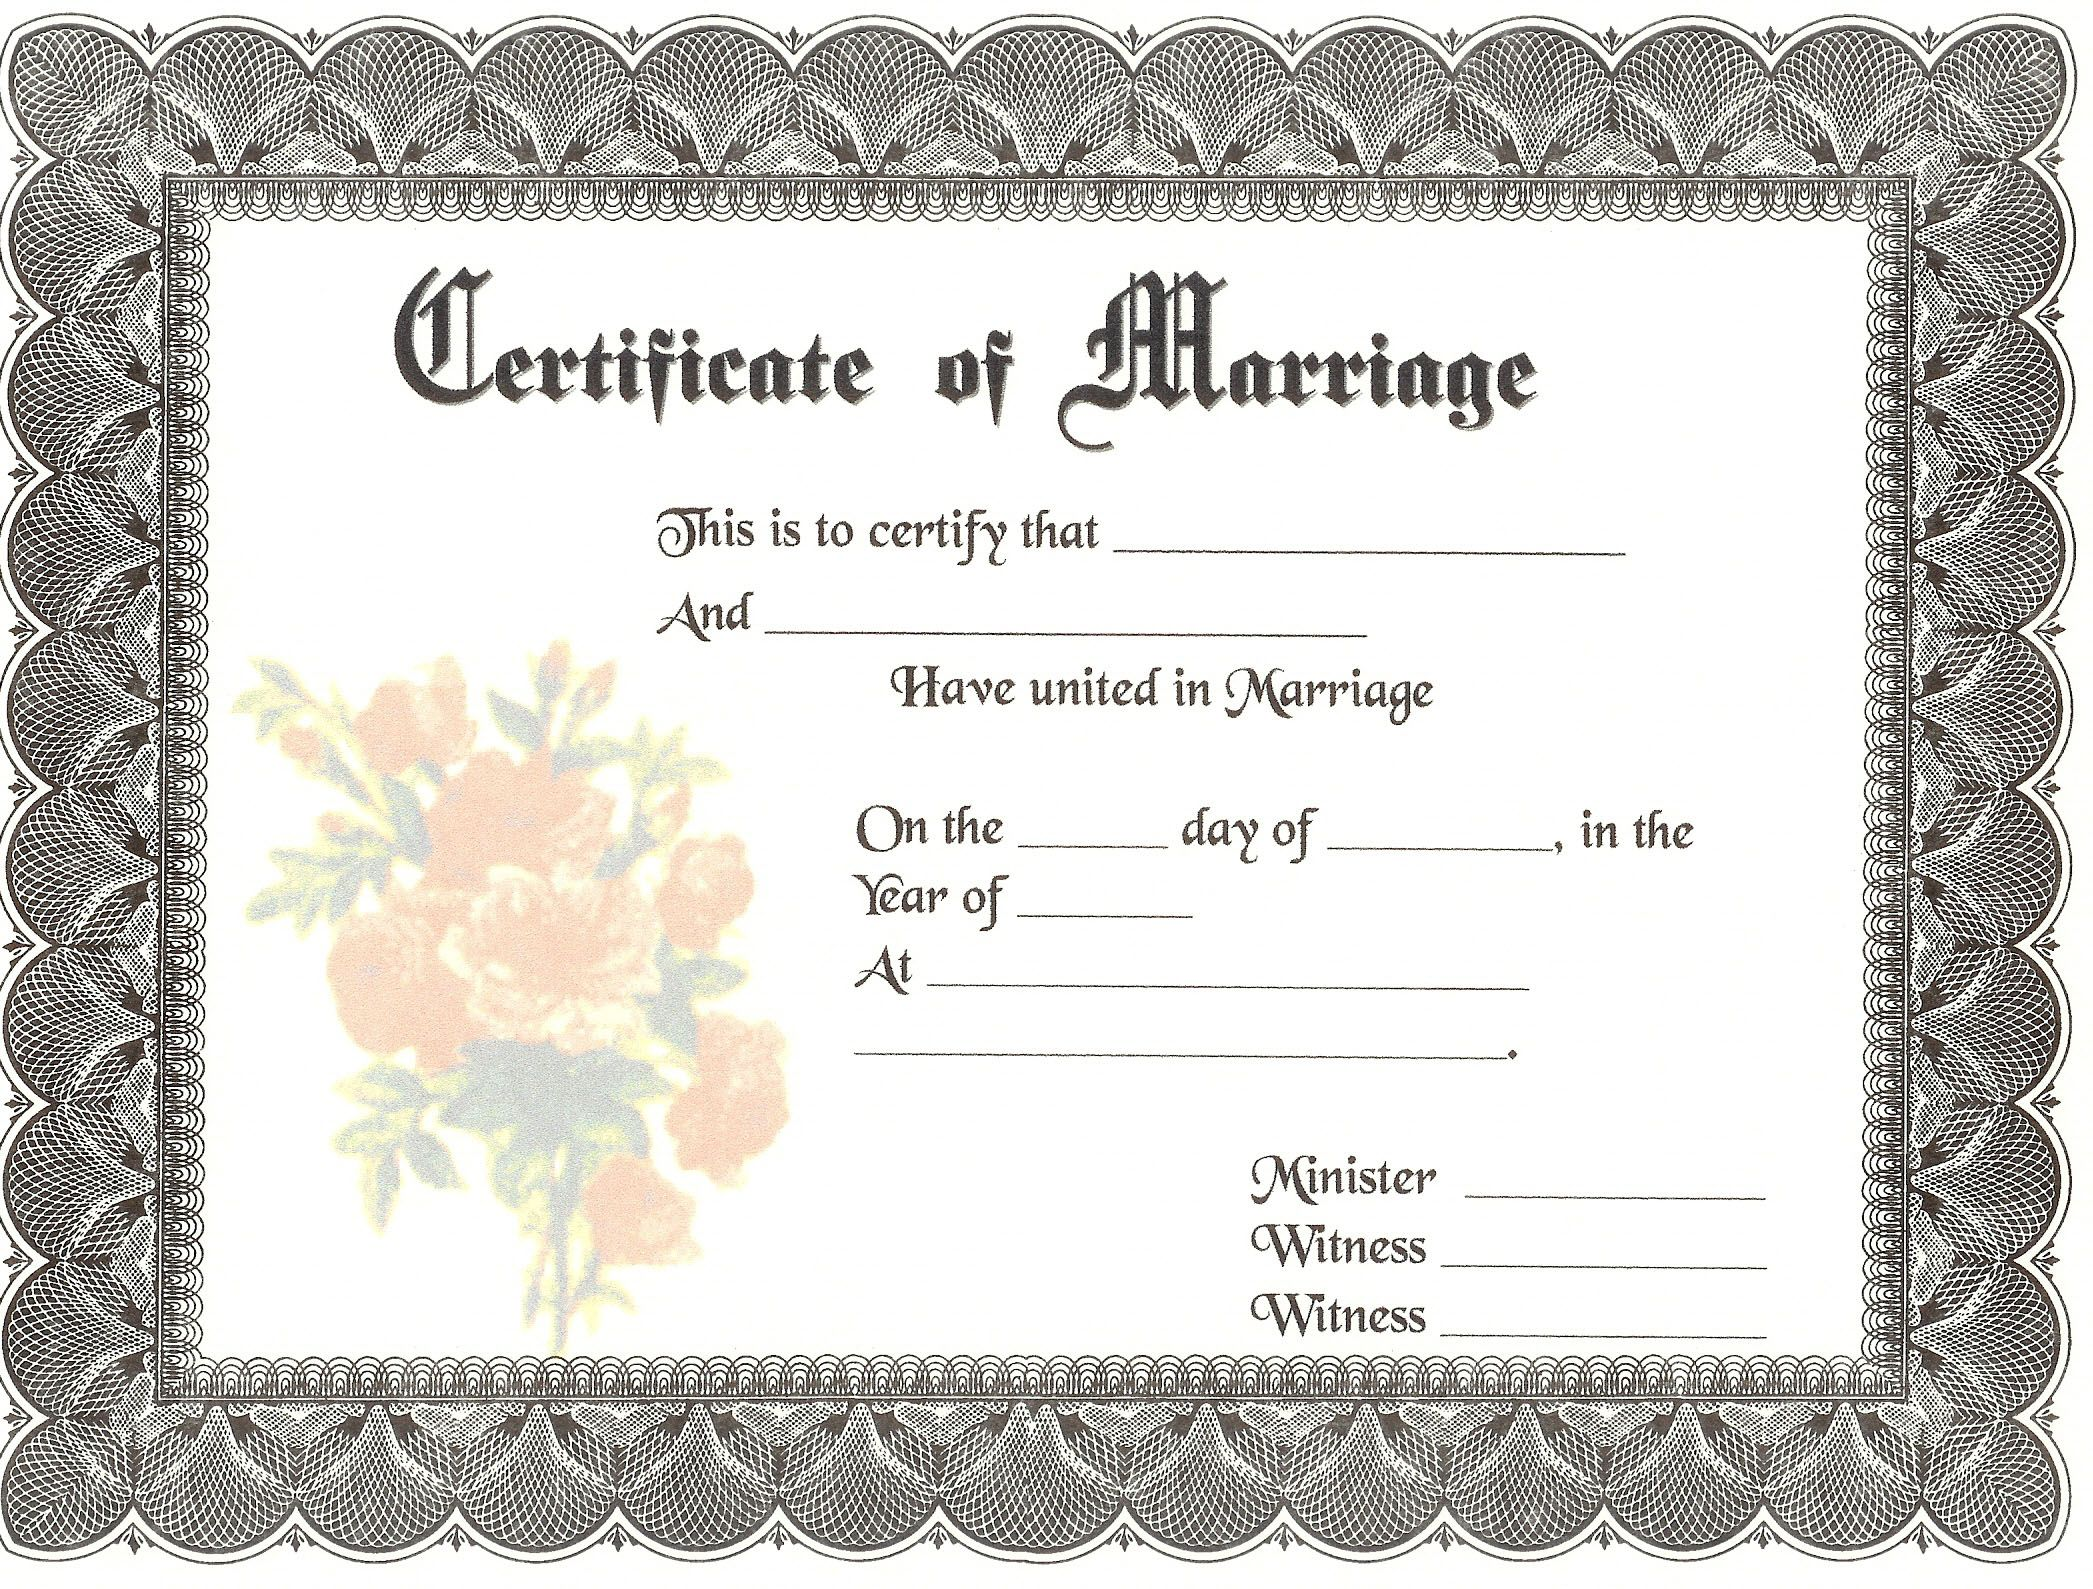 Blank marriage certificates download blank marriage certificates blank marriage certificates download blank marriage certificates hawaii dermatology pictures pic xflitez Gallery